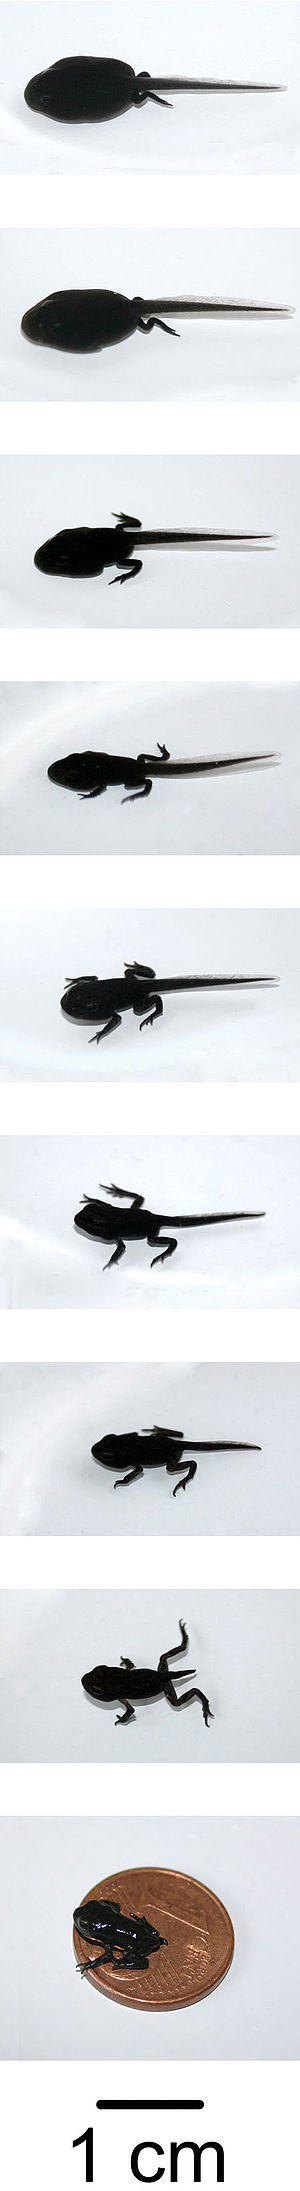 Tadpole - Metamorphosis of Bufo bufo.